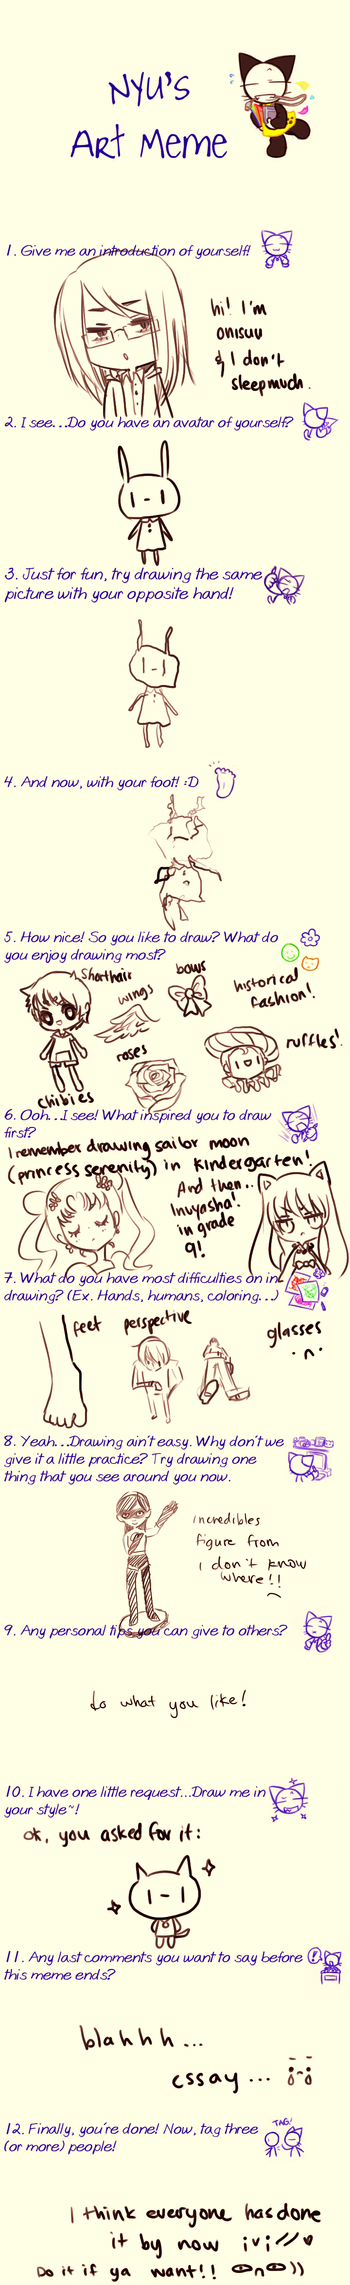 nyu's art meme by onisuu